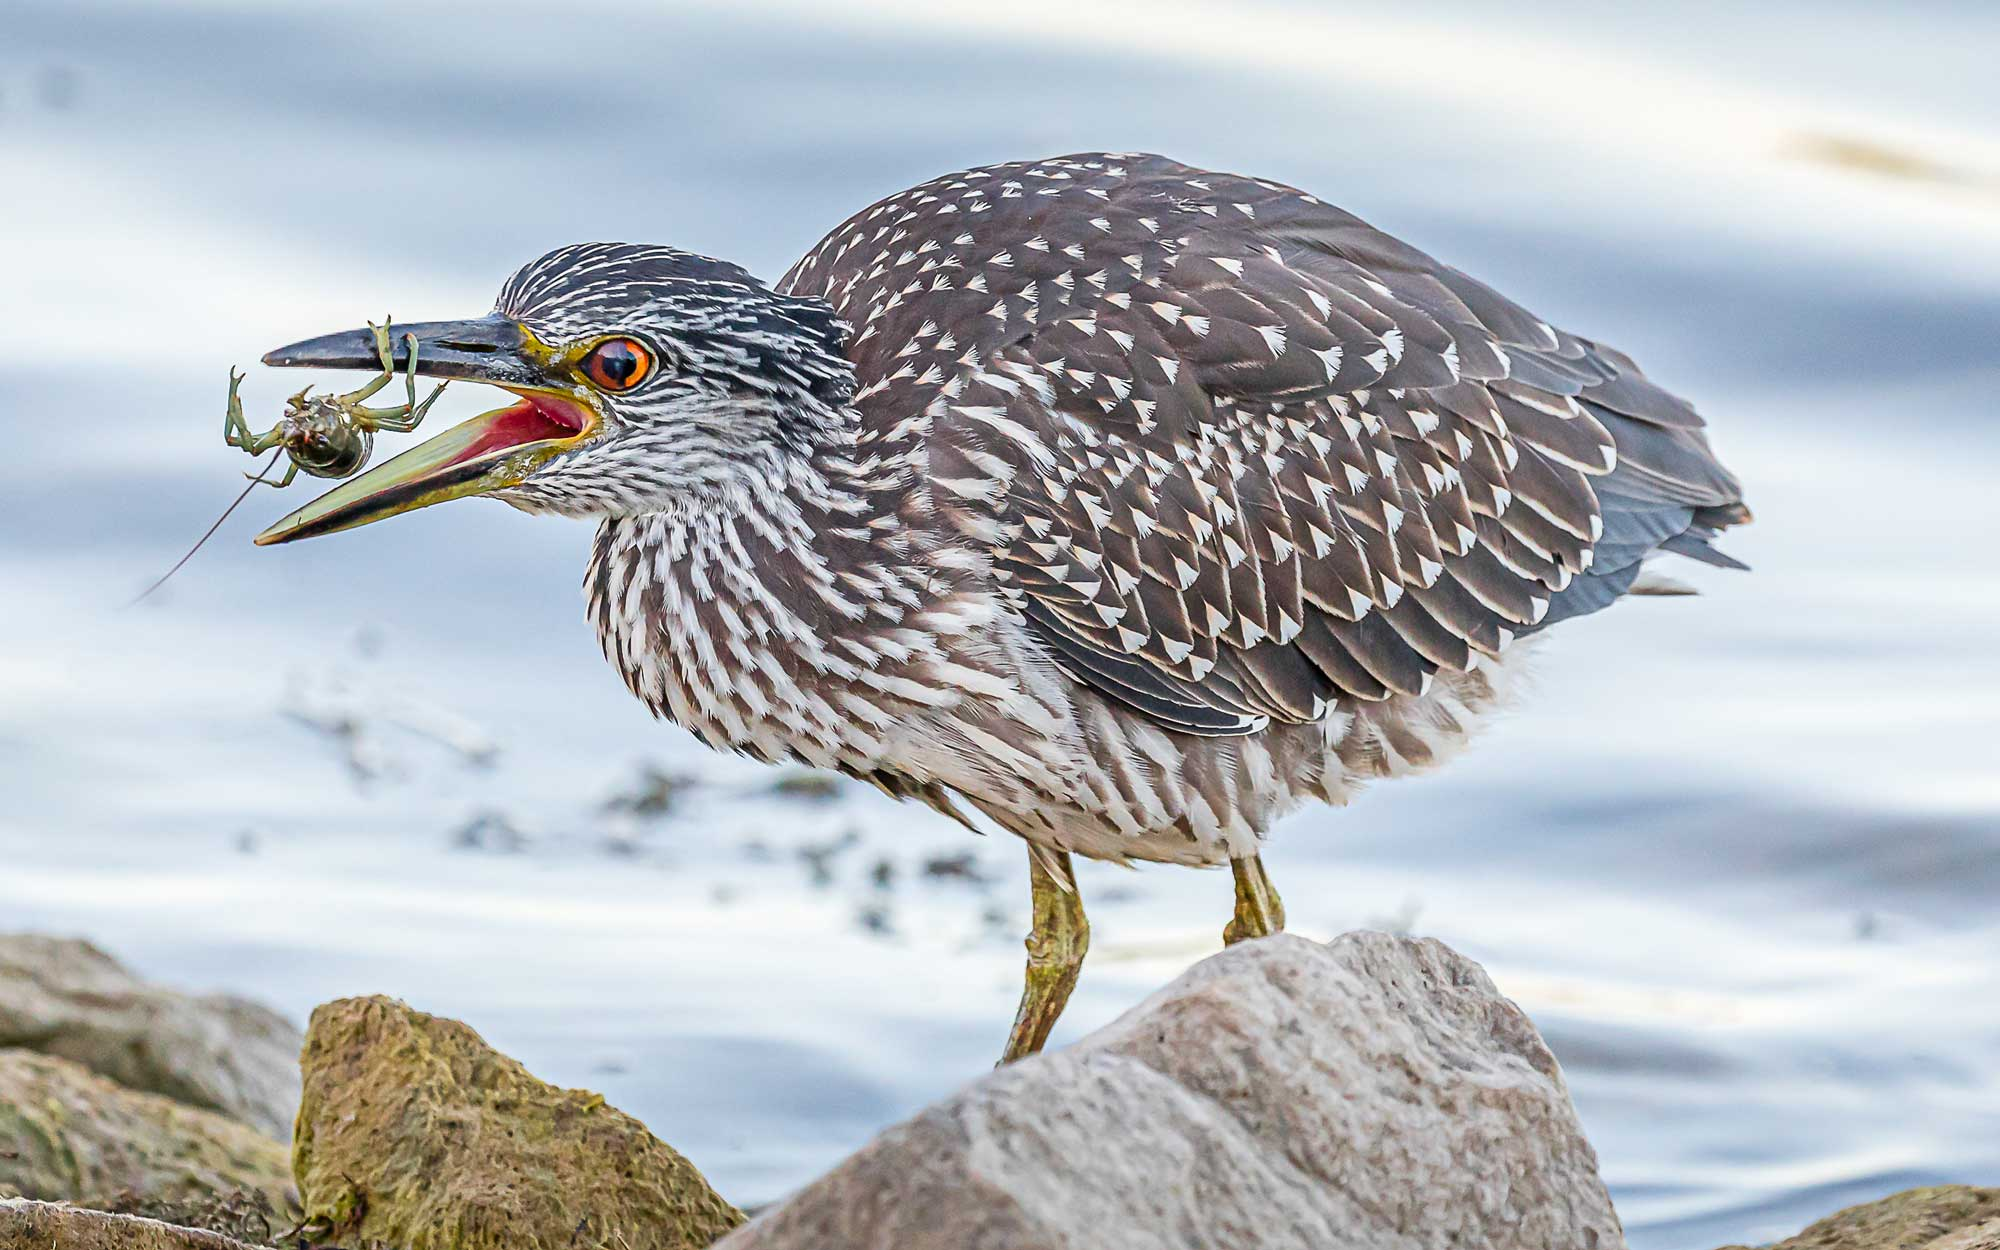 Photo for: Hungry Heron Devours Photo Contest Competition